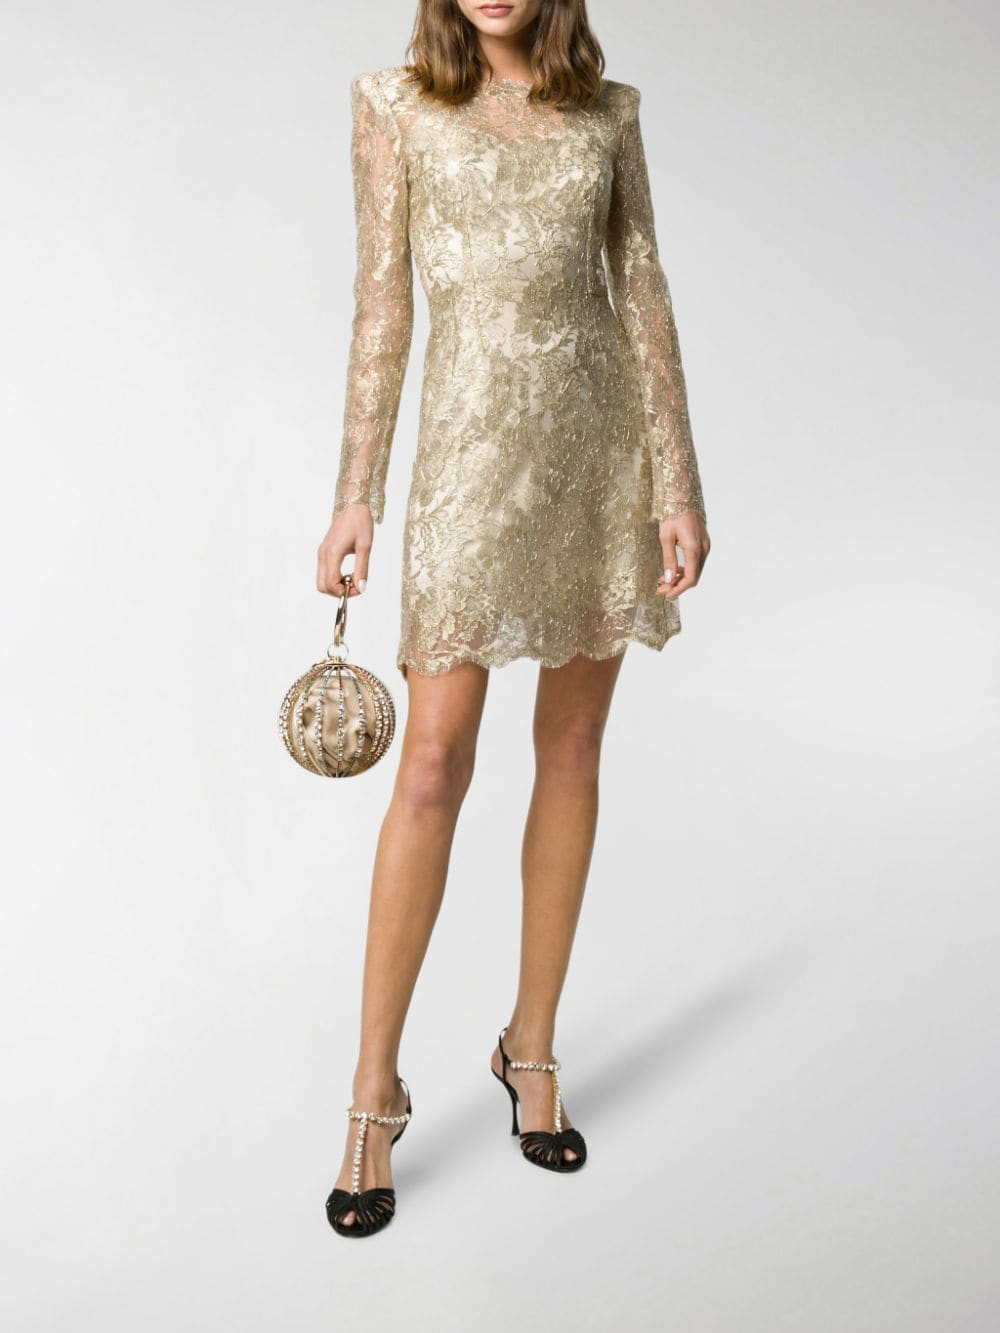 gold tone floral lace short dress DOLCE & GABBANA |  | F6H8BT-HLM02S0997